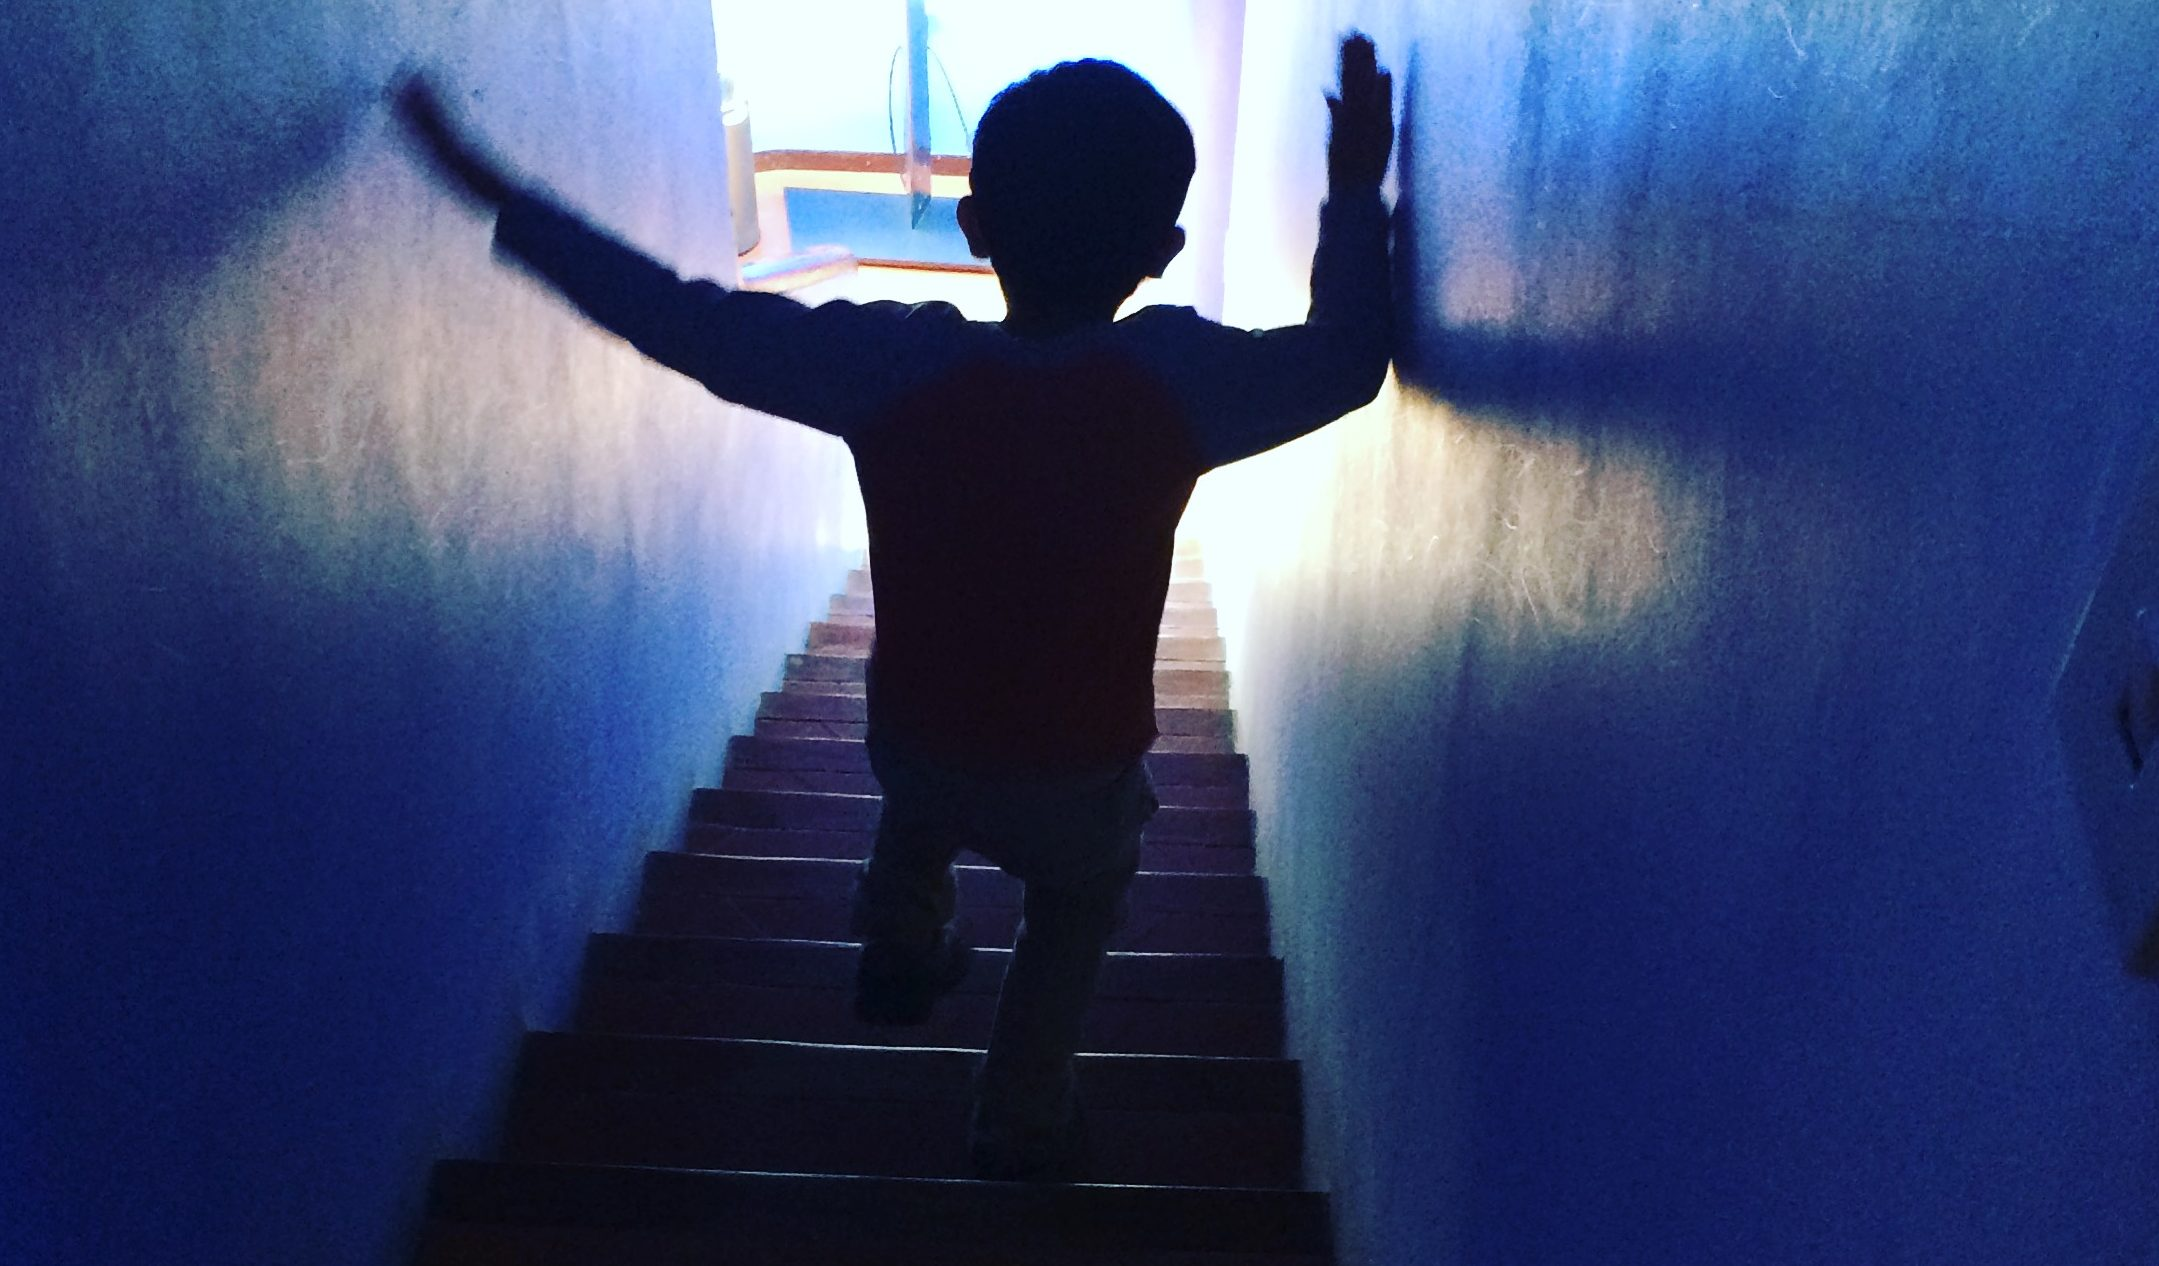 Child walking down a tunnel toward light.